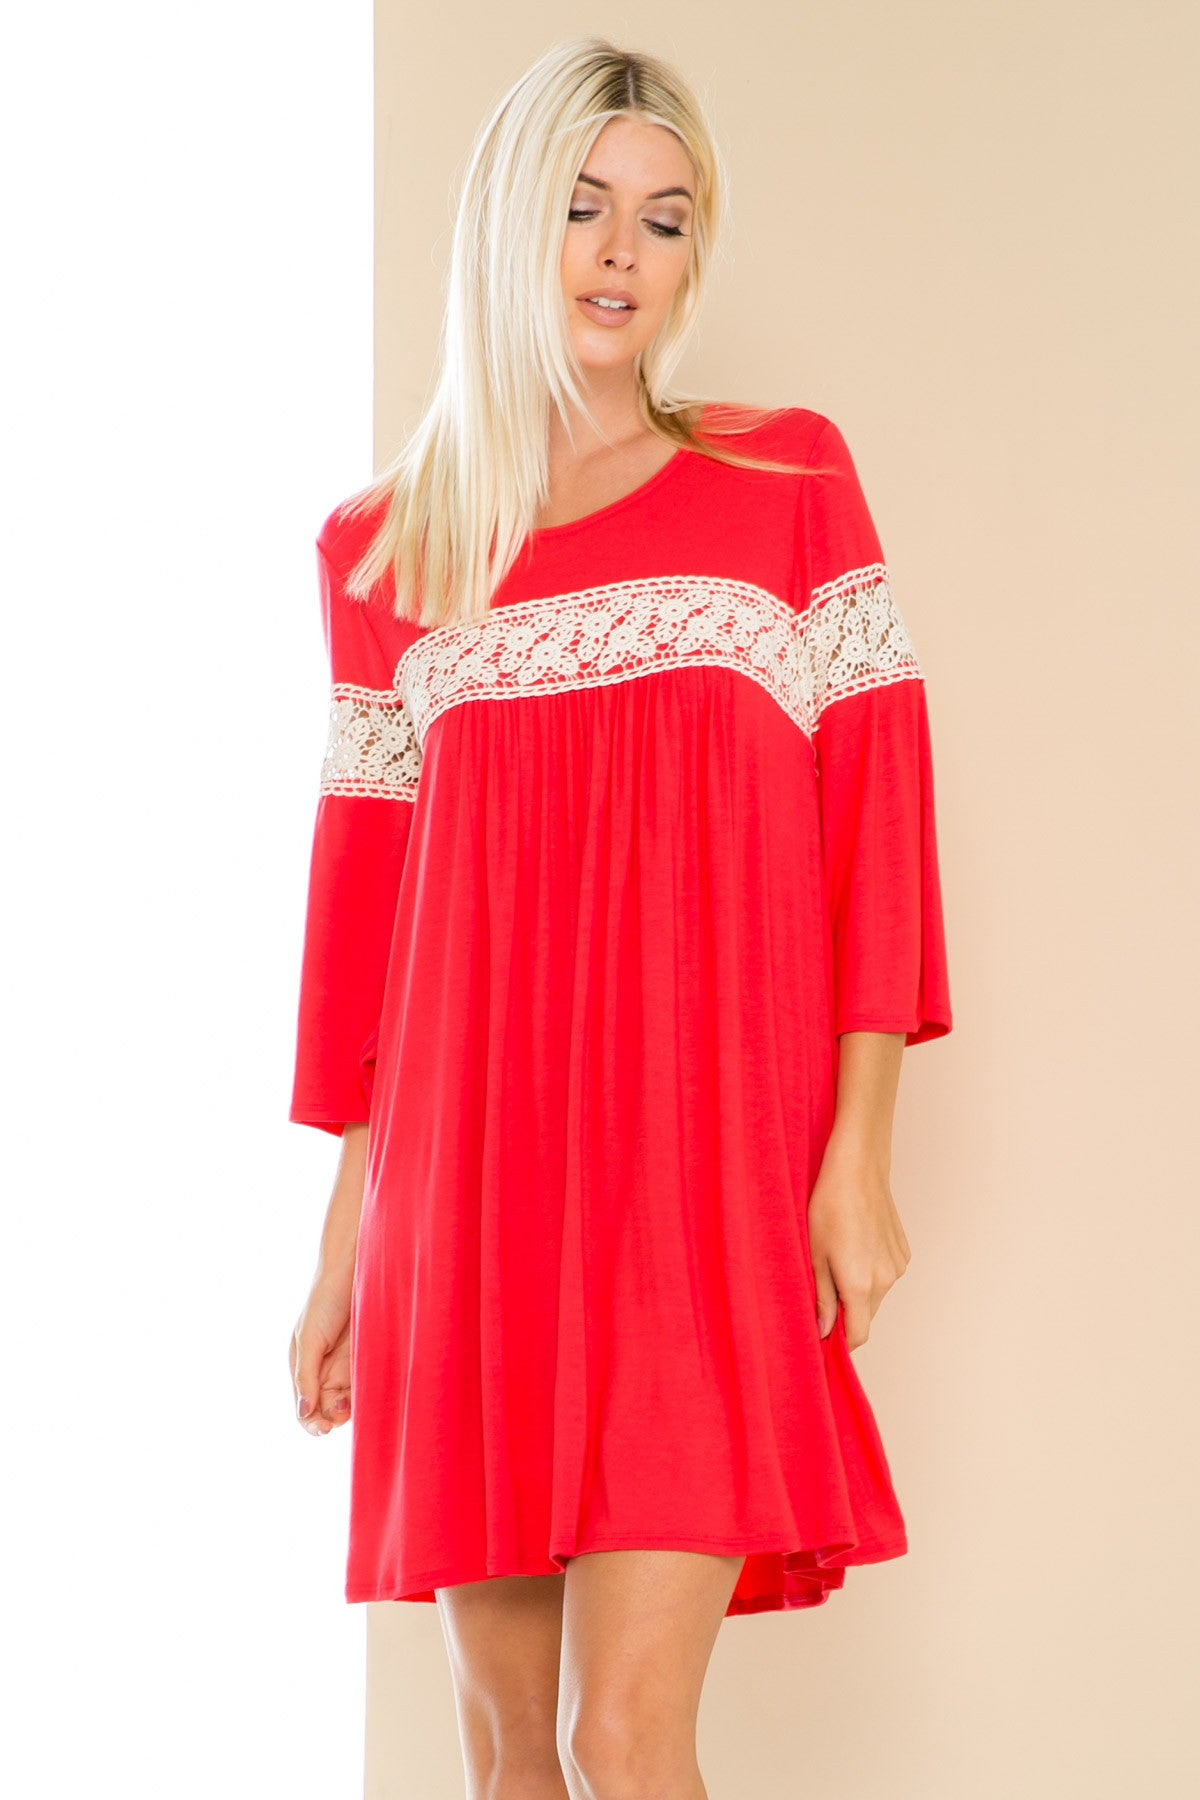 Coral Bell Sleeve Crochet Trim Swing Dress - Dresses - My Yuccie - 3